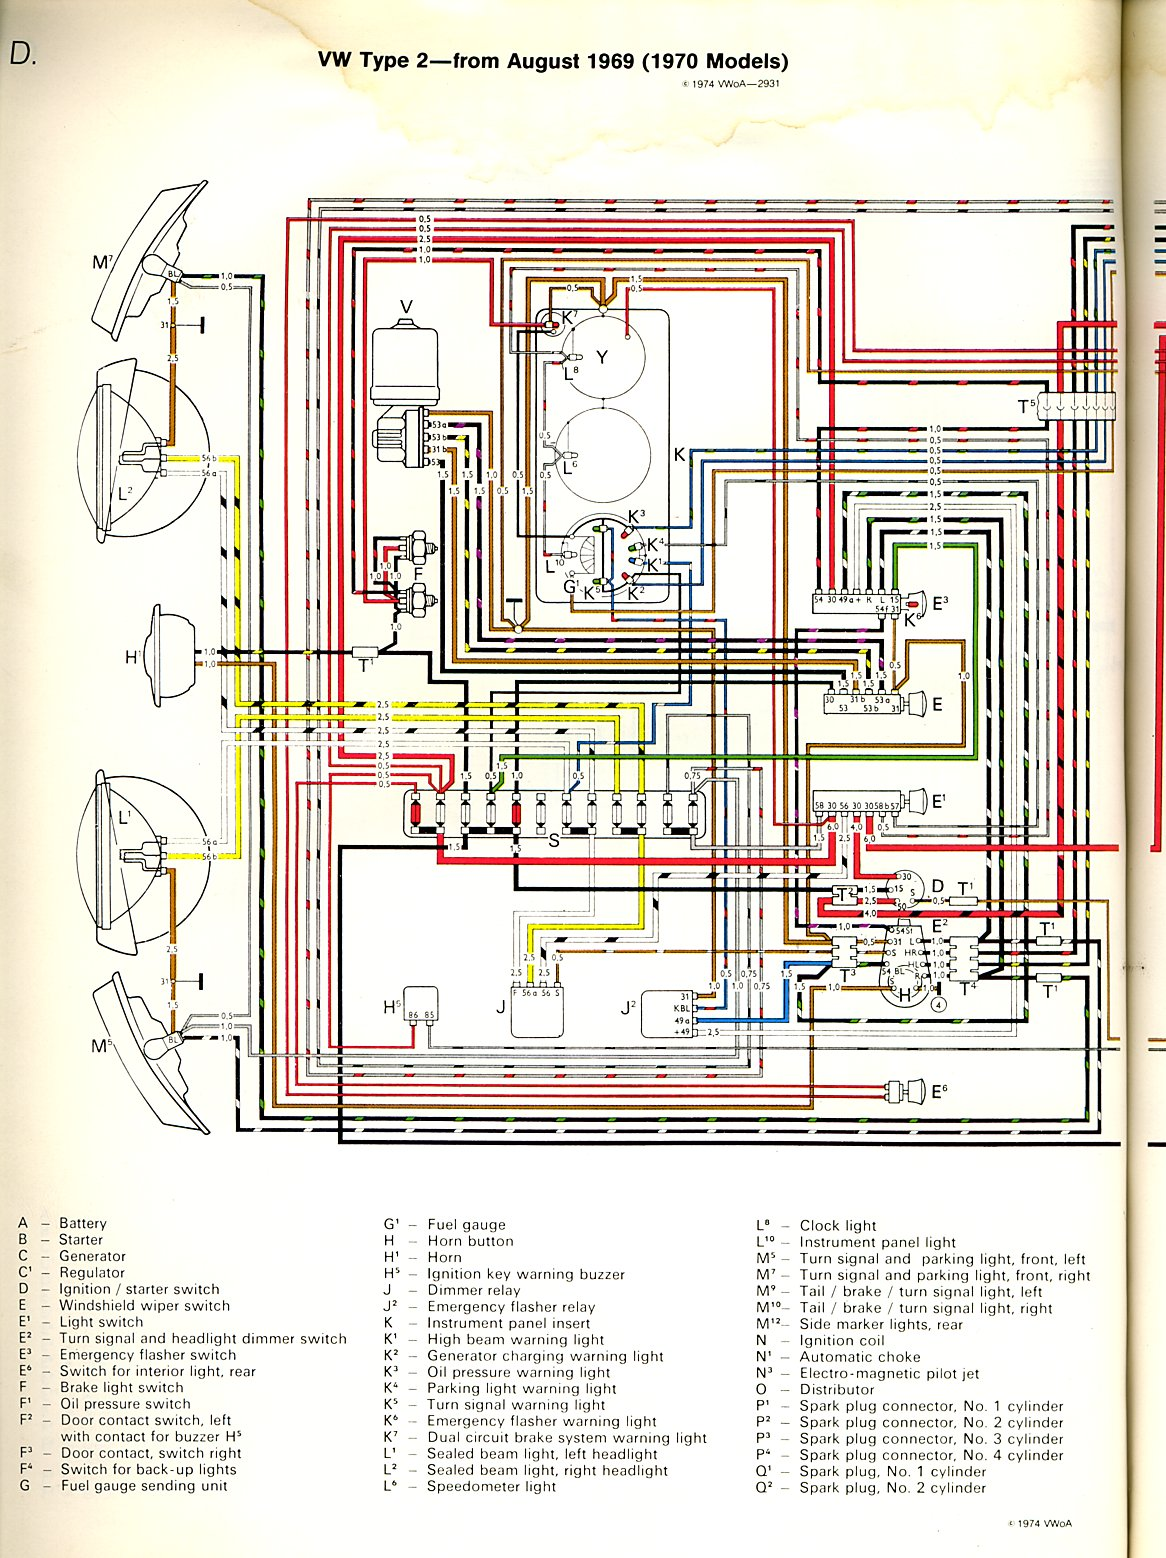 baybus_70a thesamba com type 2 wiring diagrams 1969 firebird wiring diagram at alyssarenee.co